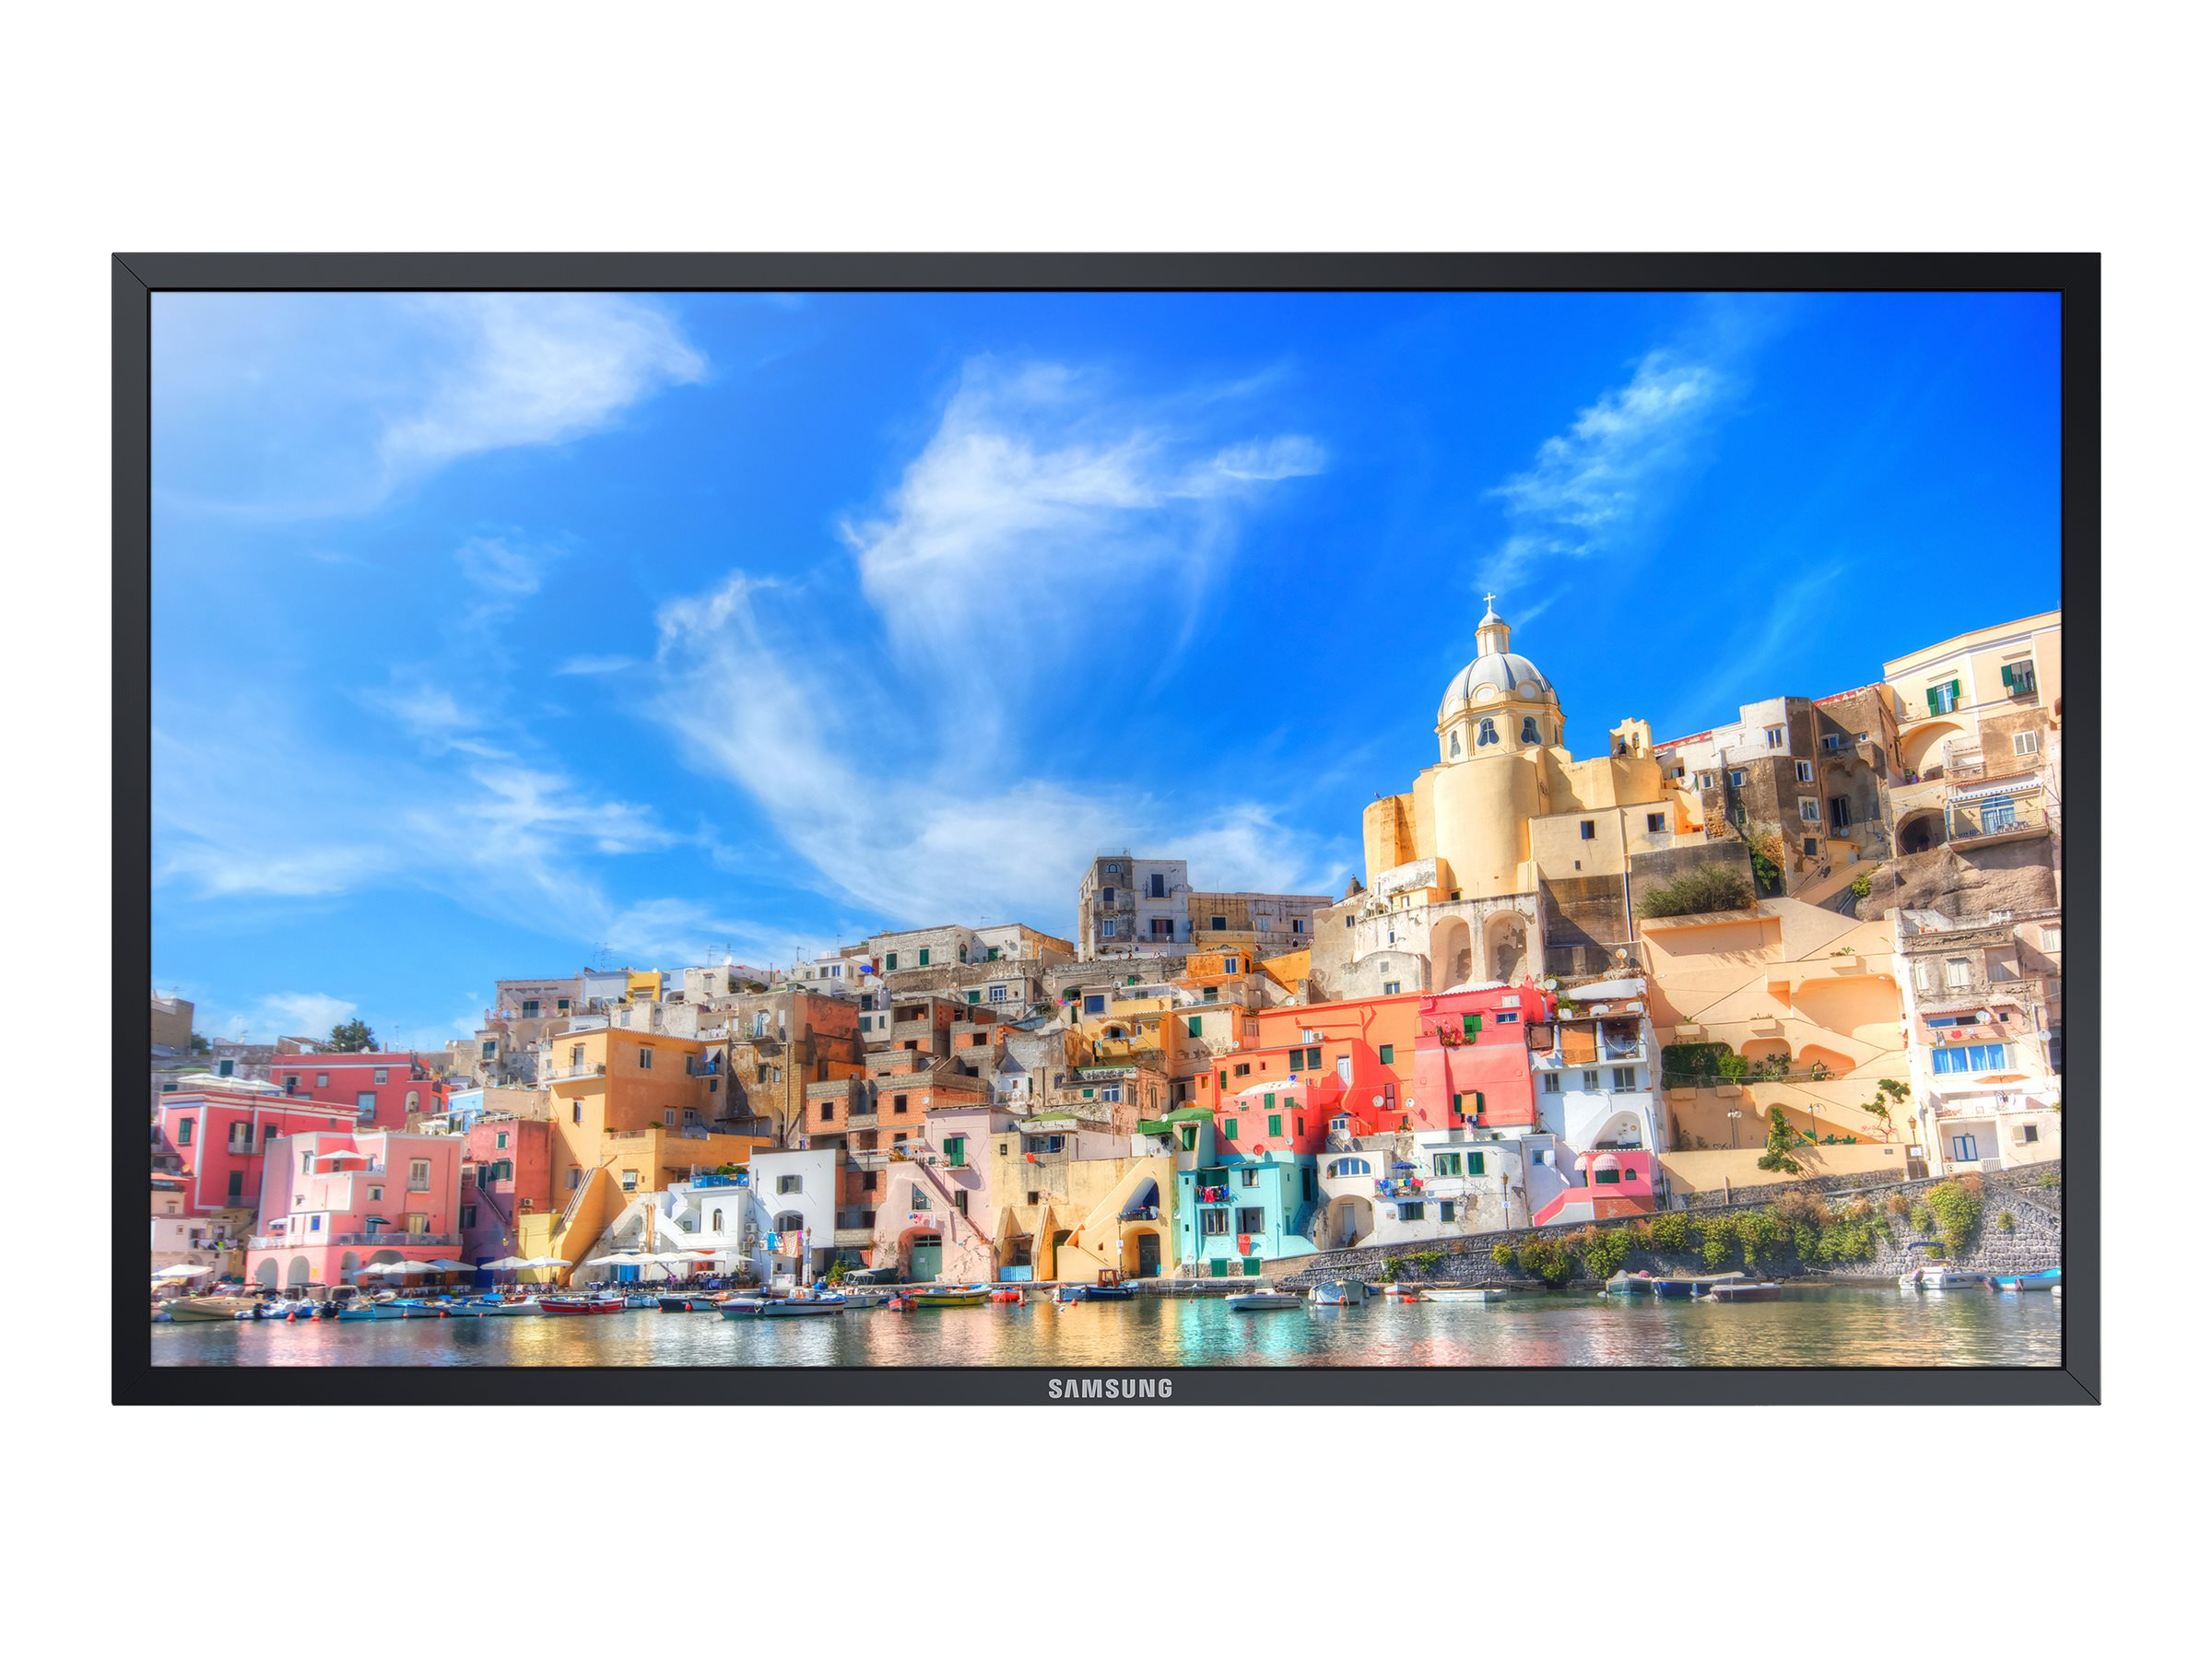 Samsung 85 QMD-BR Ultra HD LED-LCD Touchscreen Display, Black, QM85D-BR, 28346687, Monitors - Large-Format LED-LCD